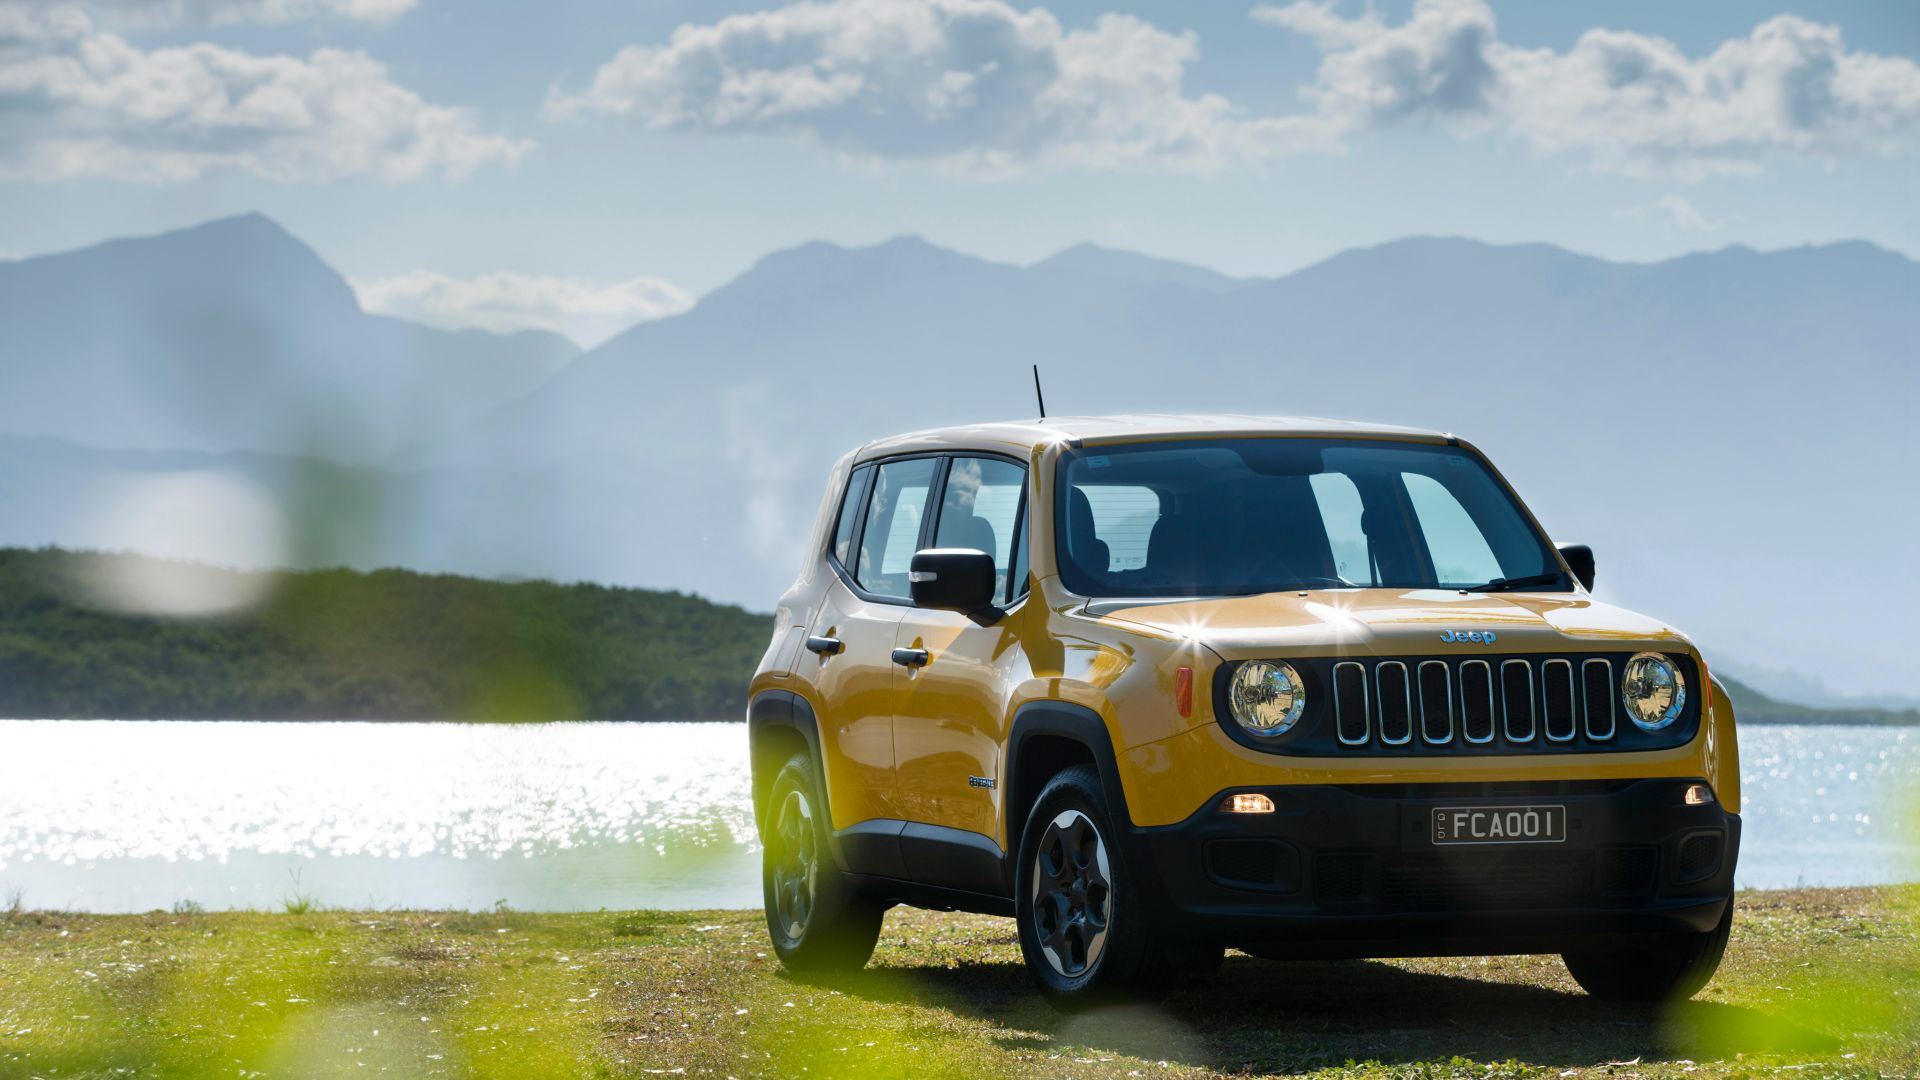 Wallpaper Jeep Renegade Sport Yellow Suv Cars Bikes